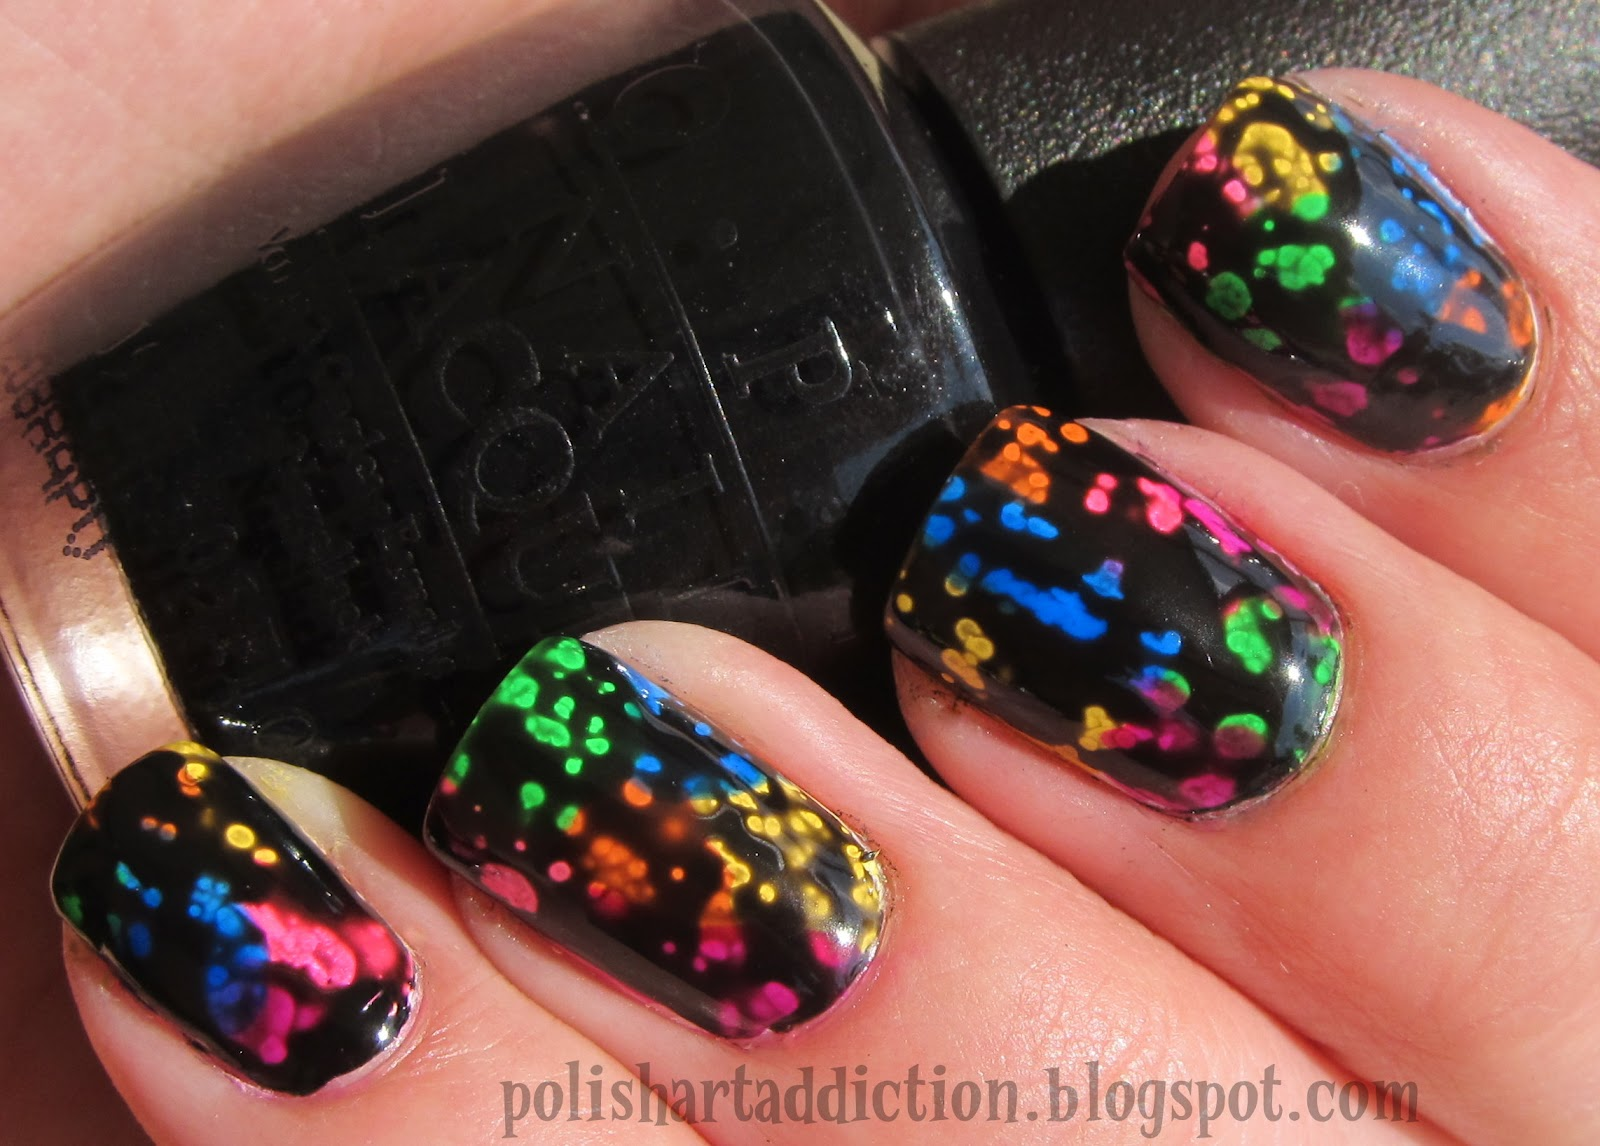 OPI Black Spotted Over Neons